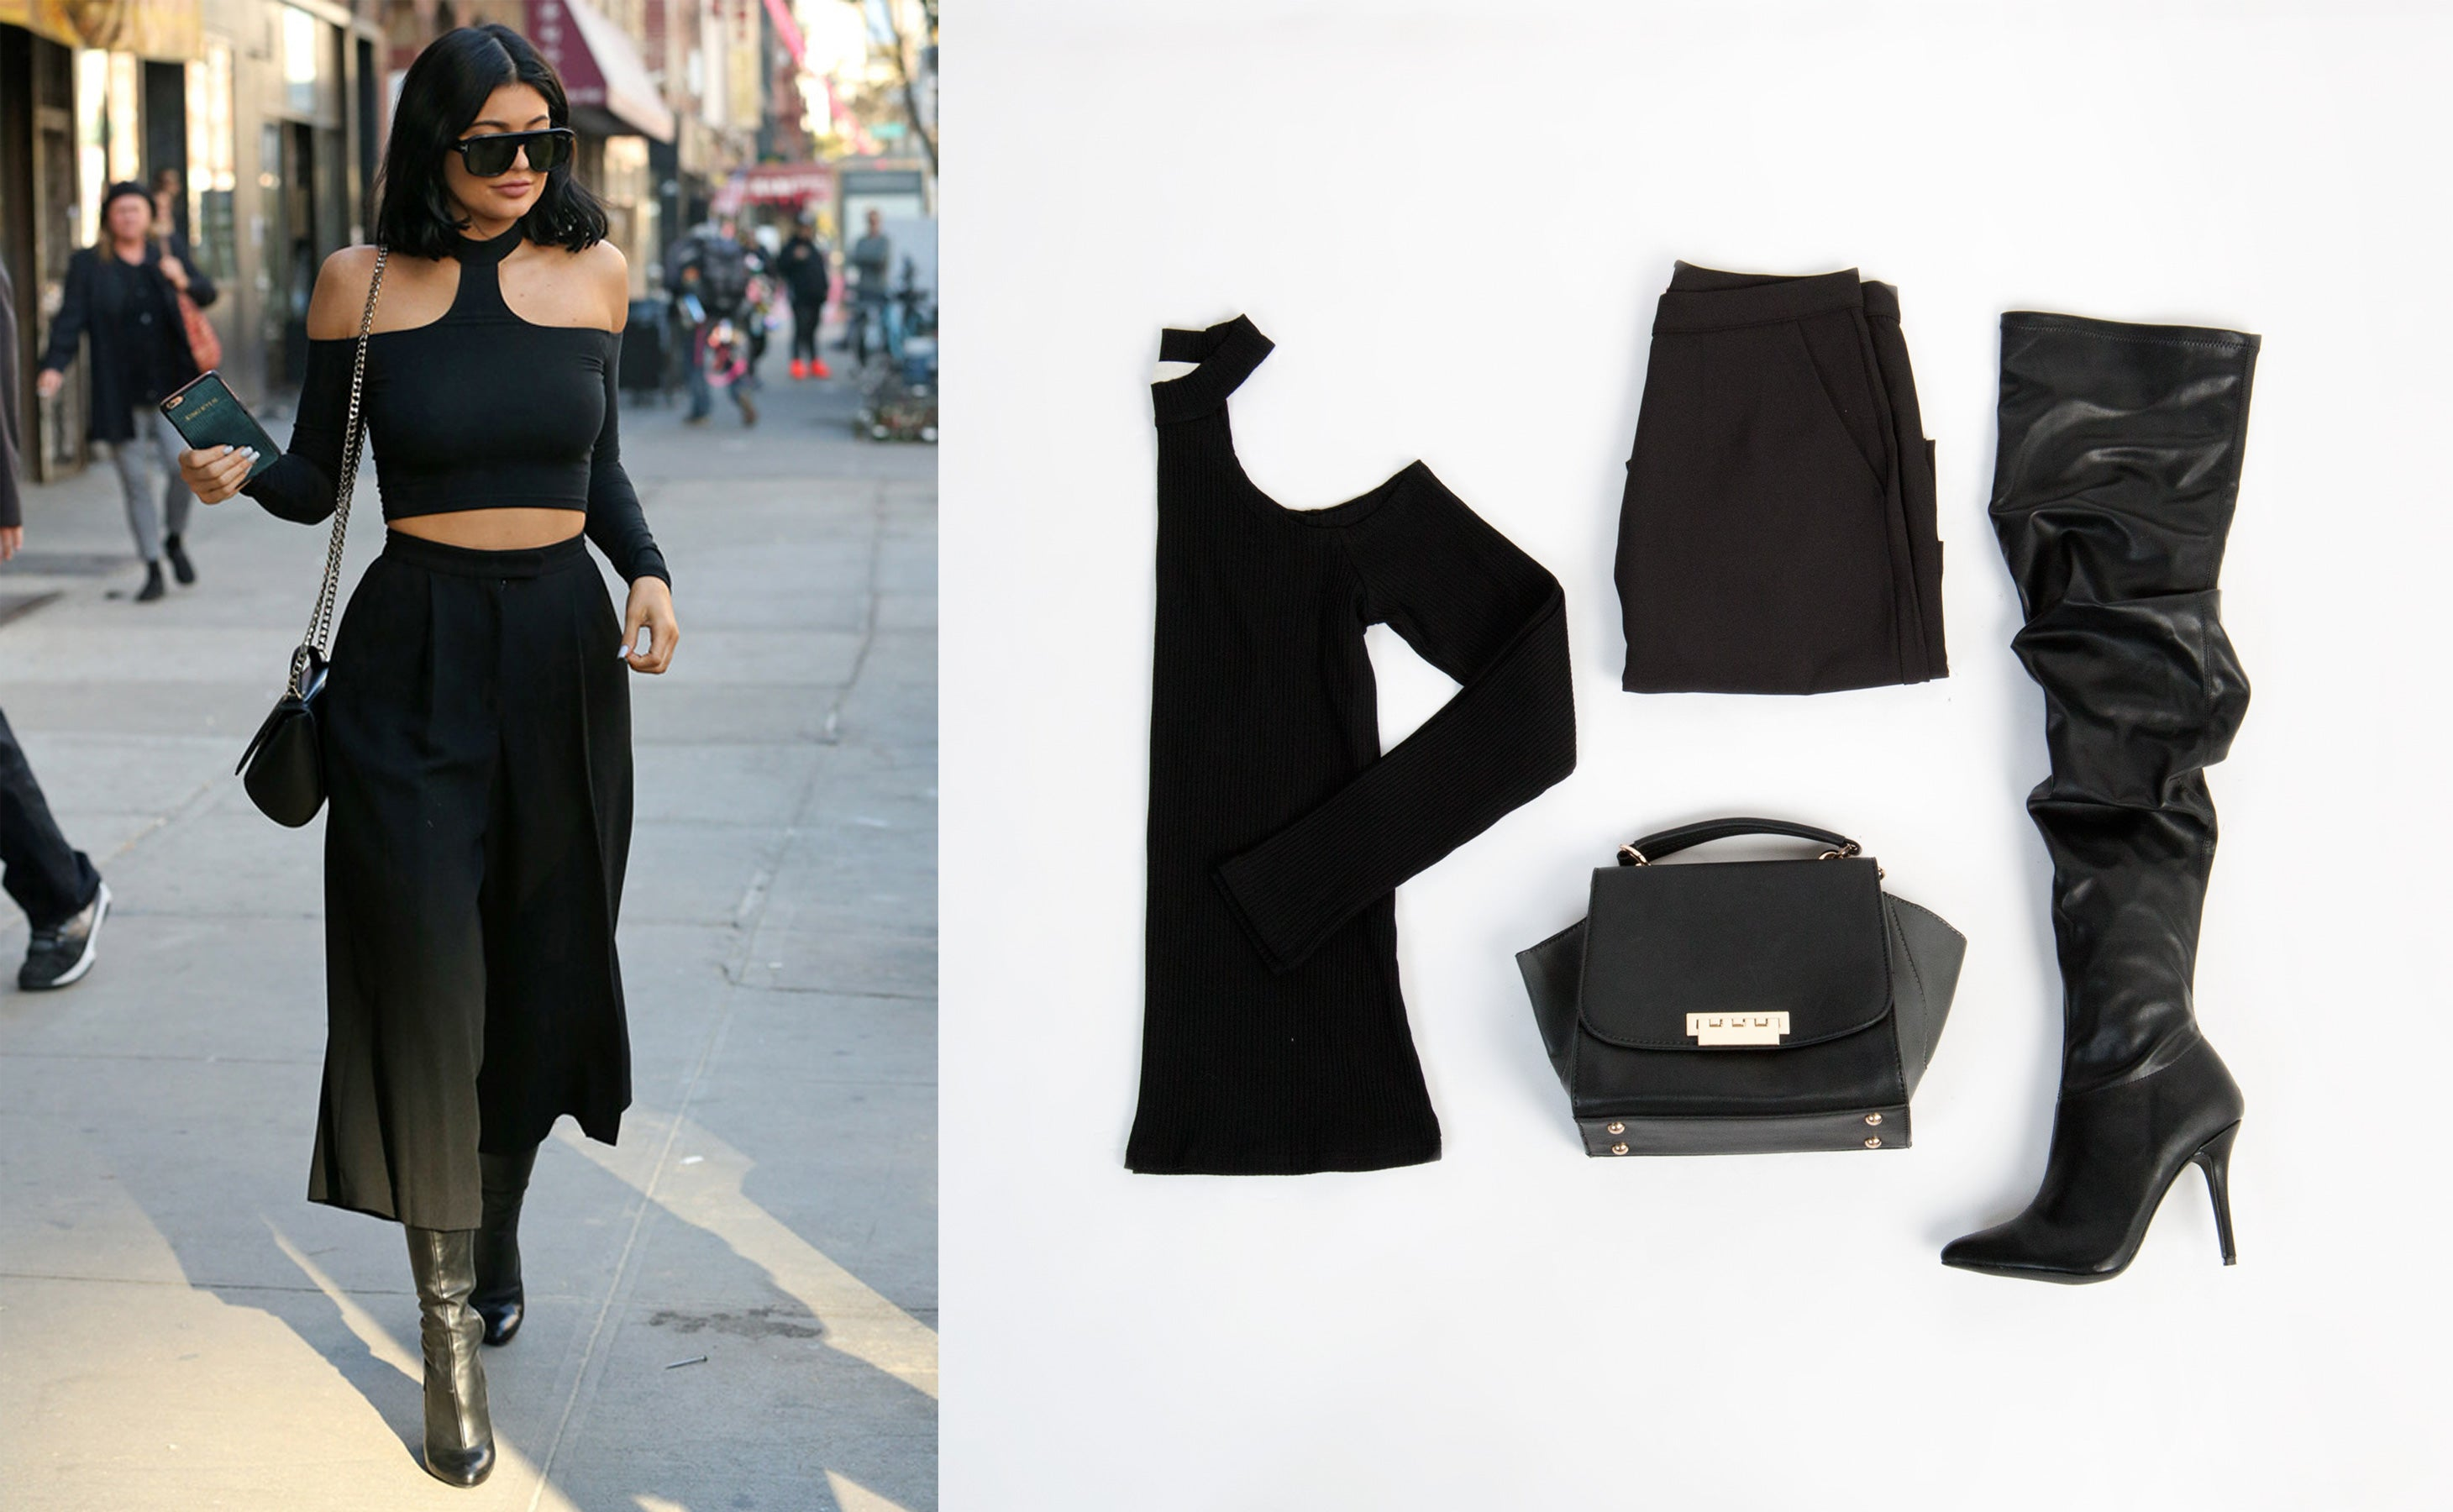 Kylie Jenner Street Style Outfit: Valentine's Day Date Night Look